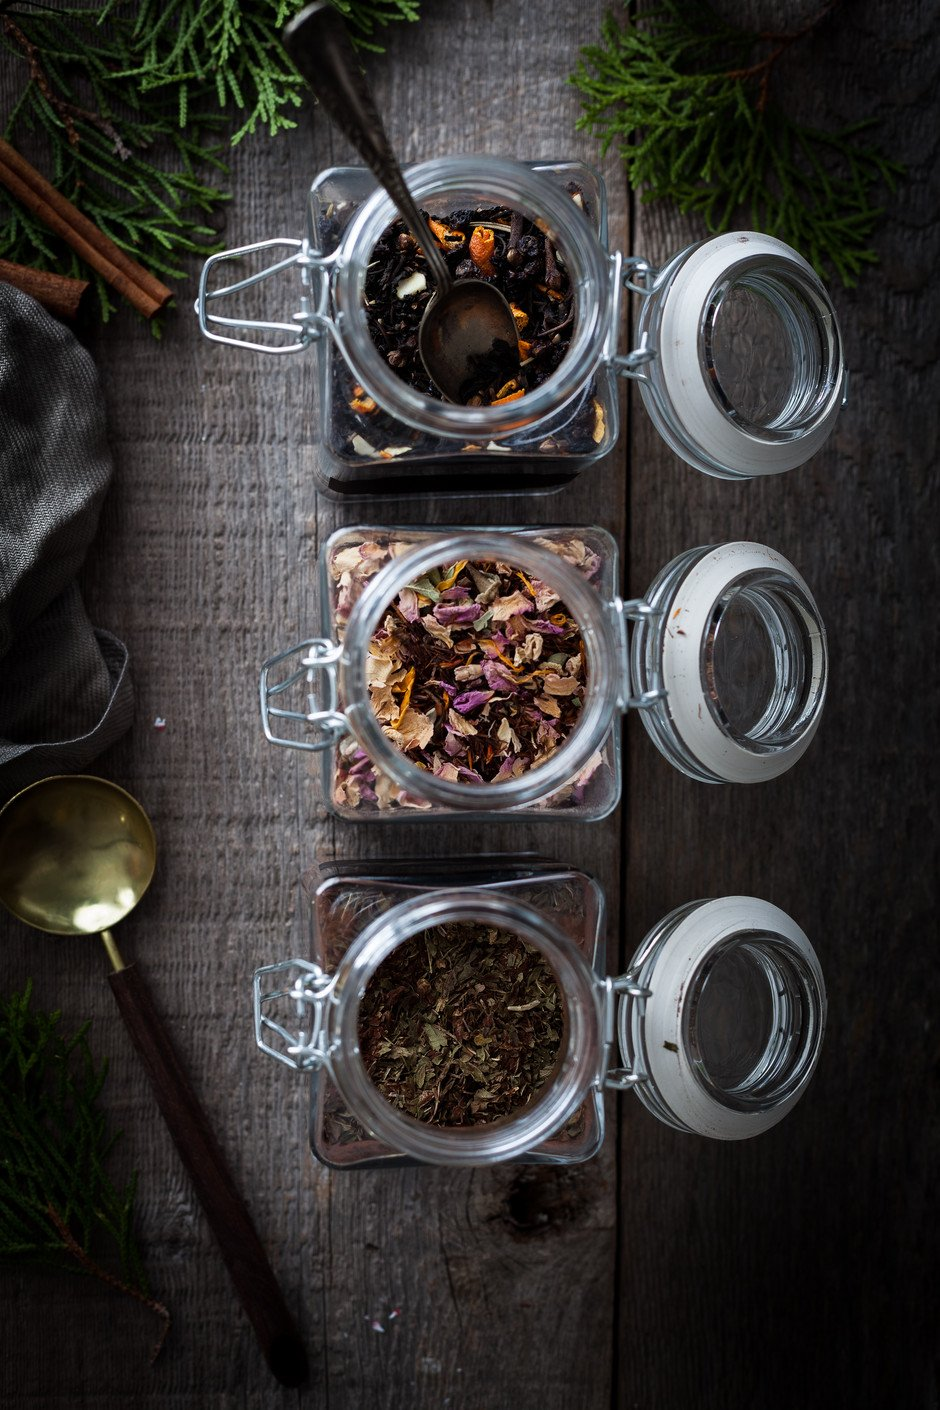 overhead image of tea blends in jars on a wooden surface.